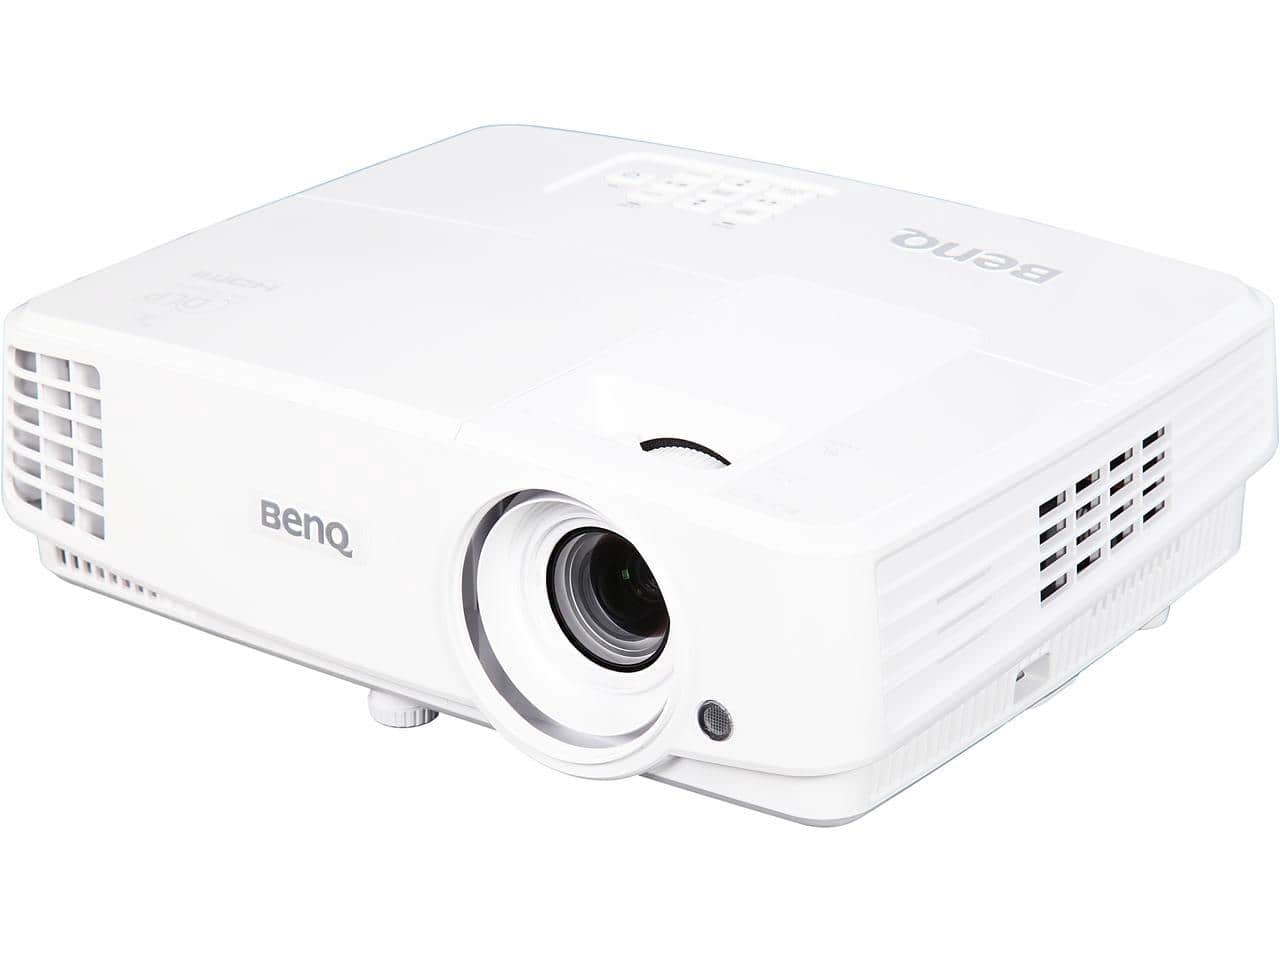 BenQ MH530 1920x1080 3D Ready DLP Home Theater Projector with Built-In Speakers for $429.99 + Free Shipping @ Newegg.com